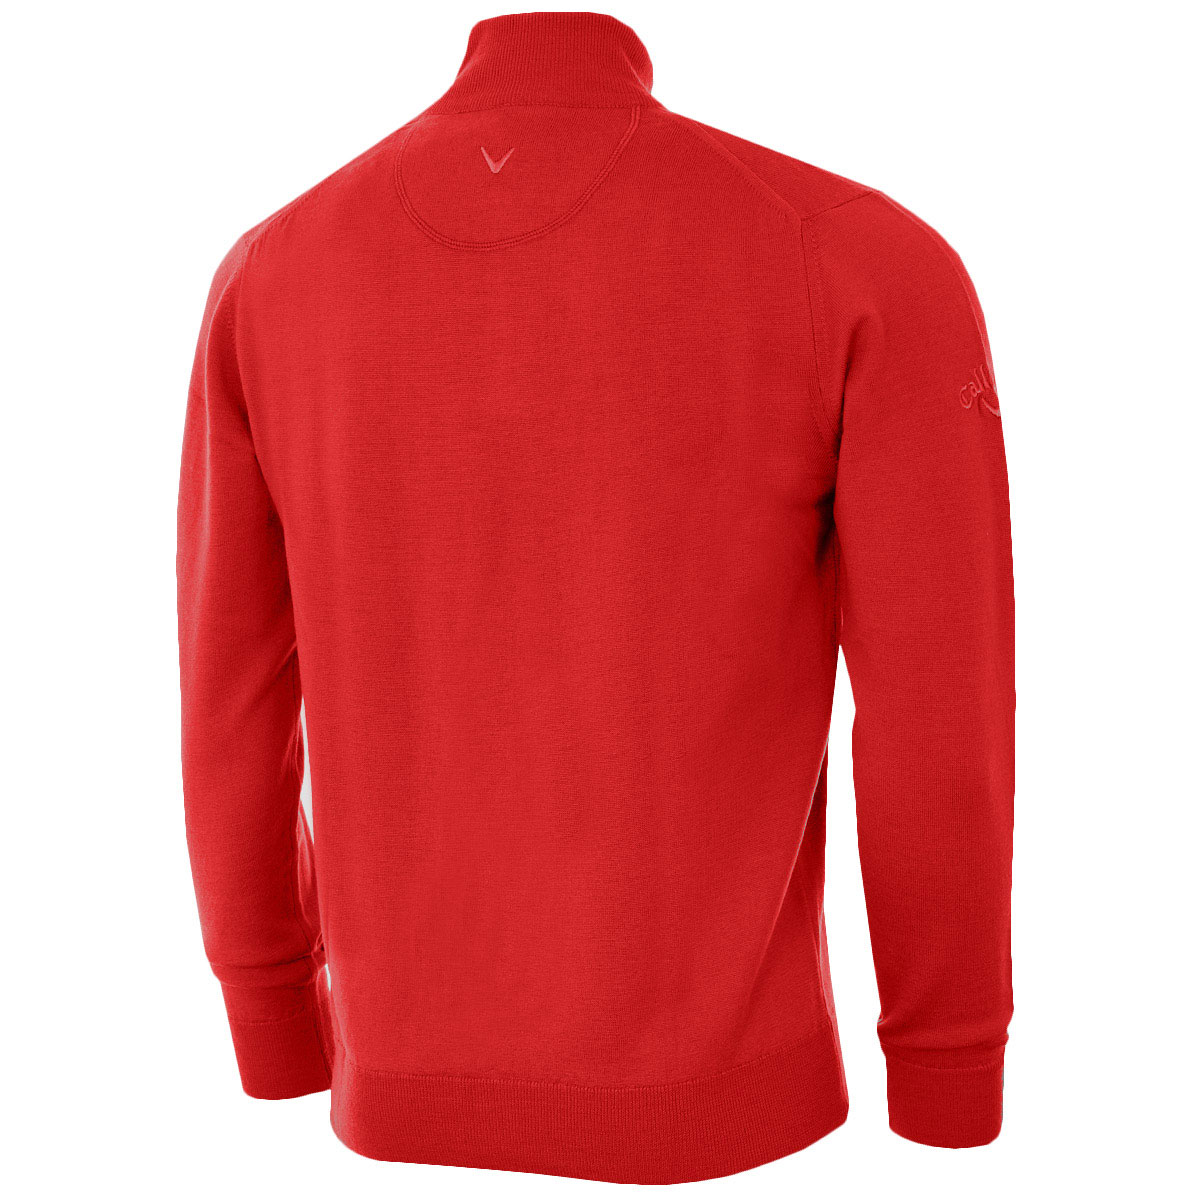 Callaway-Golf-Mens-Merino-1-4-Zip-Sweater-Wool-Pullover-Therm-Jumper-60-OFF-RRP thumbnail 29